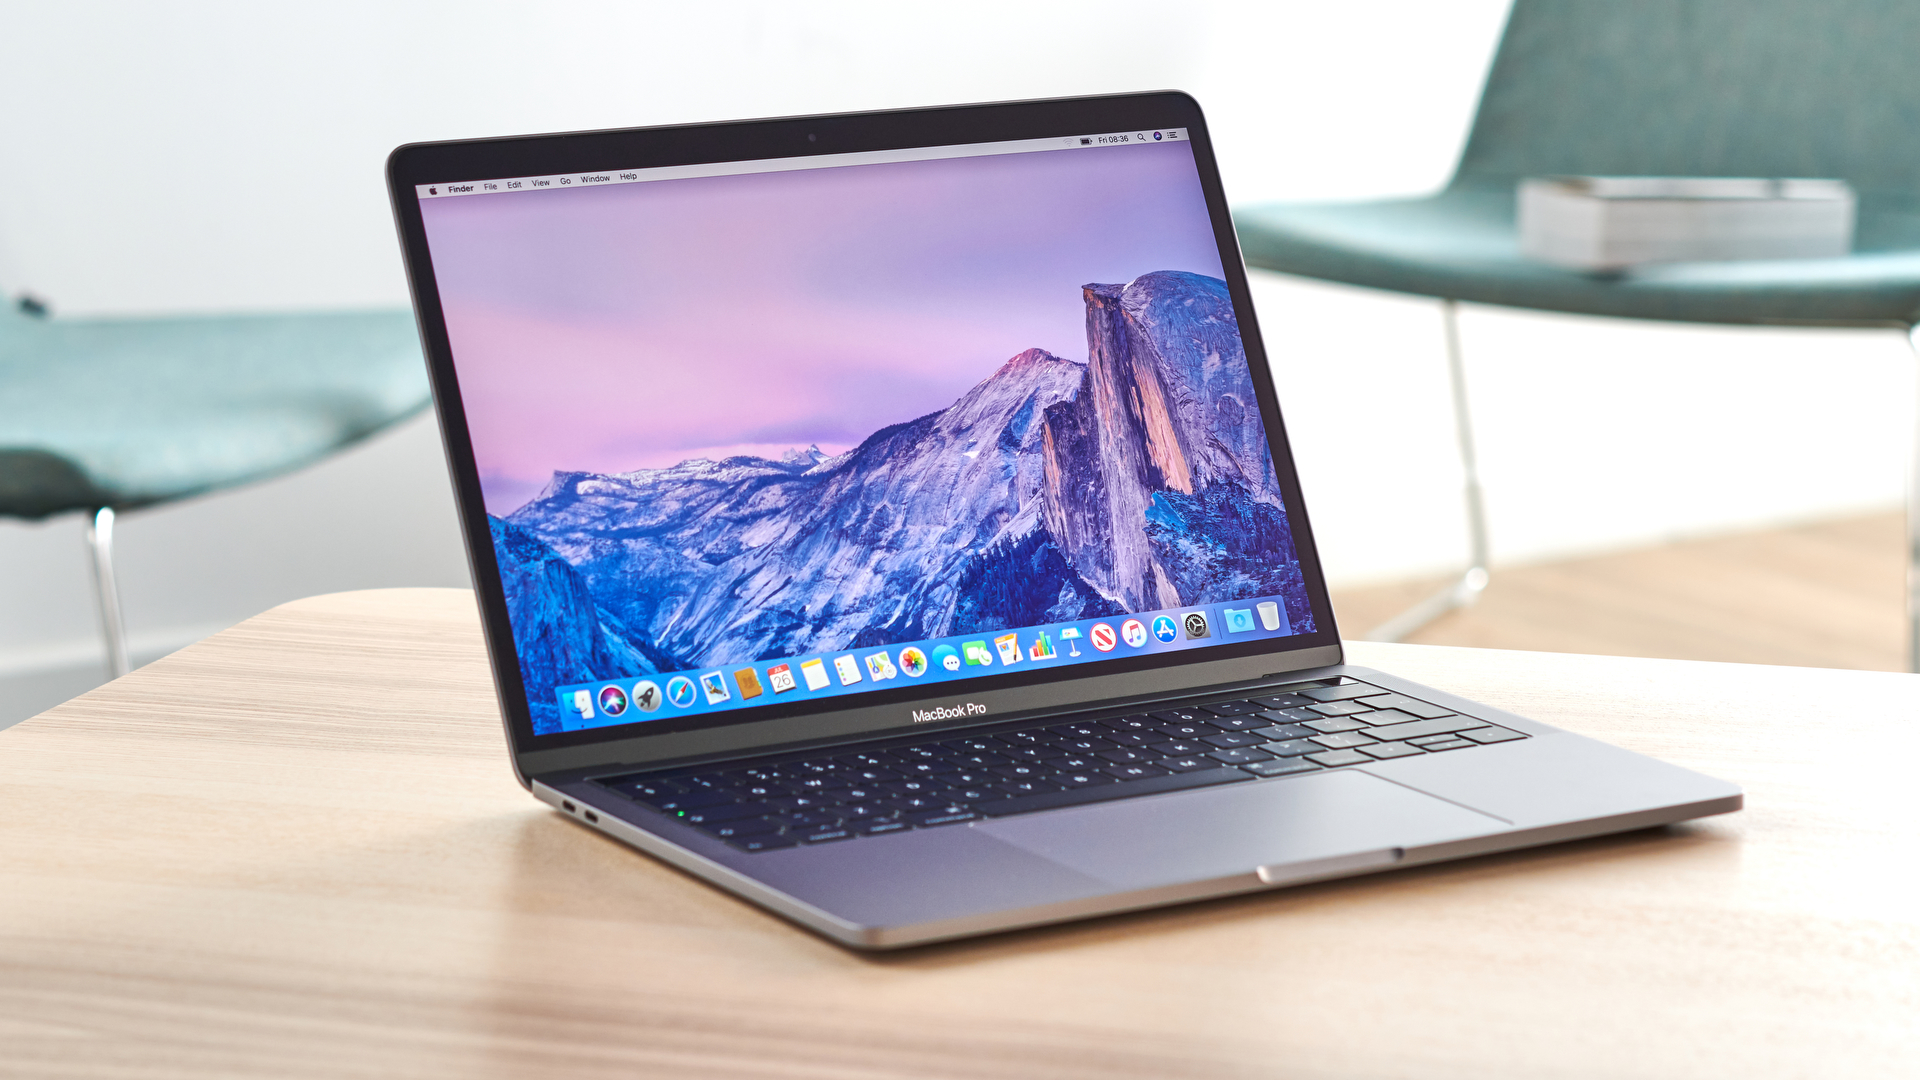 Best Laptop for Photo Editing And Gaming